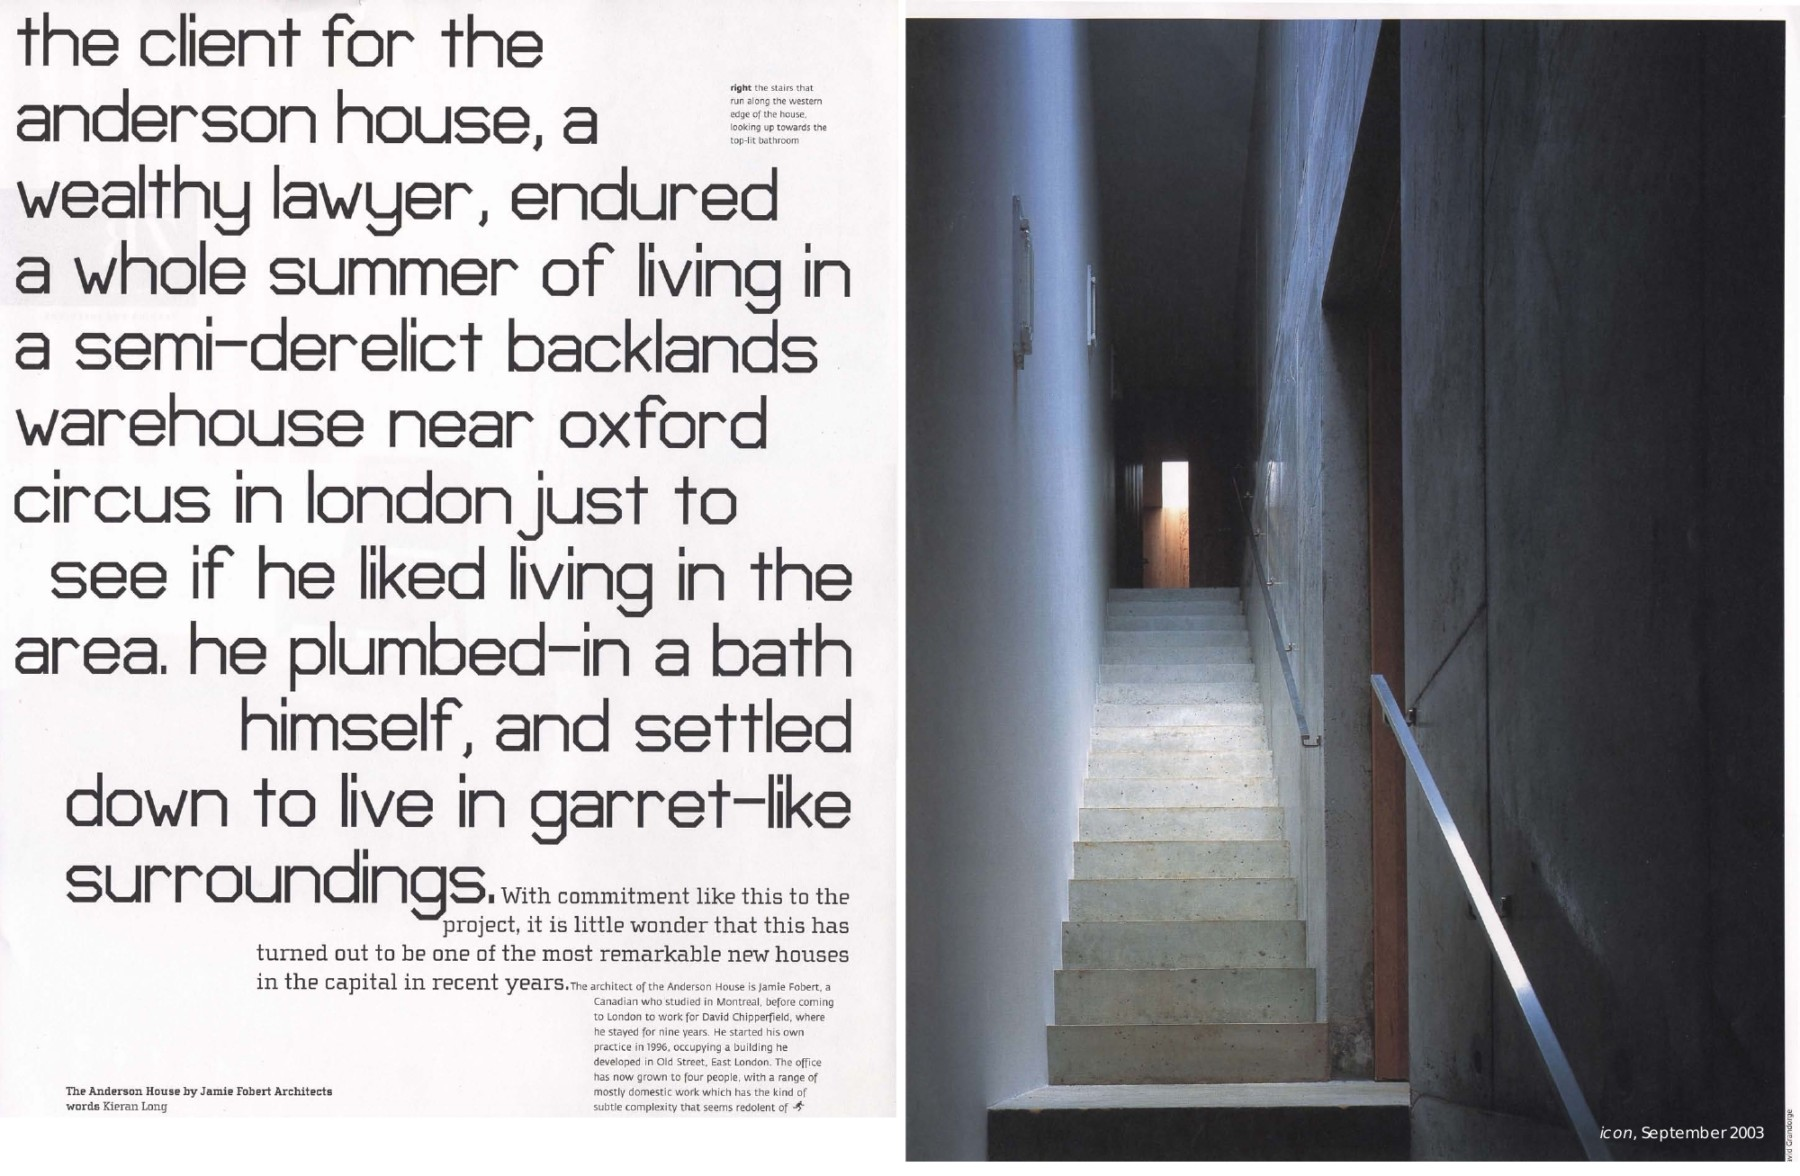 Jamie-Fobert-Architects-Anderson-House-icon-magazine-September-article-press (2)